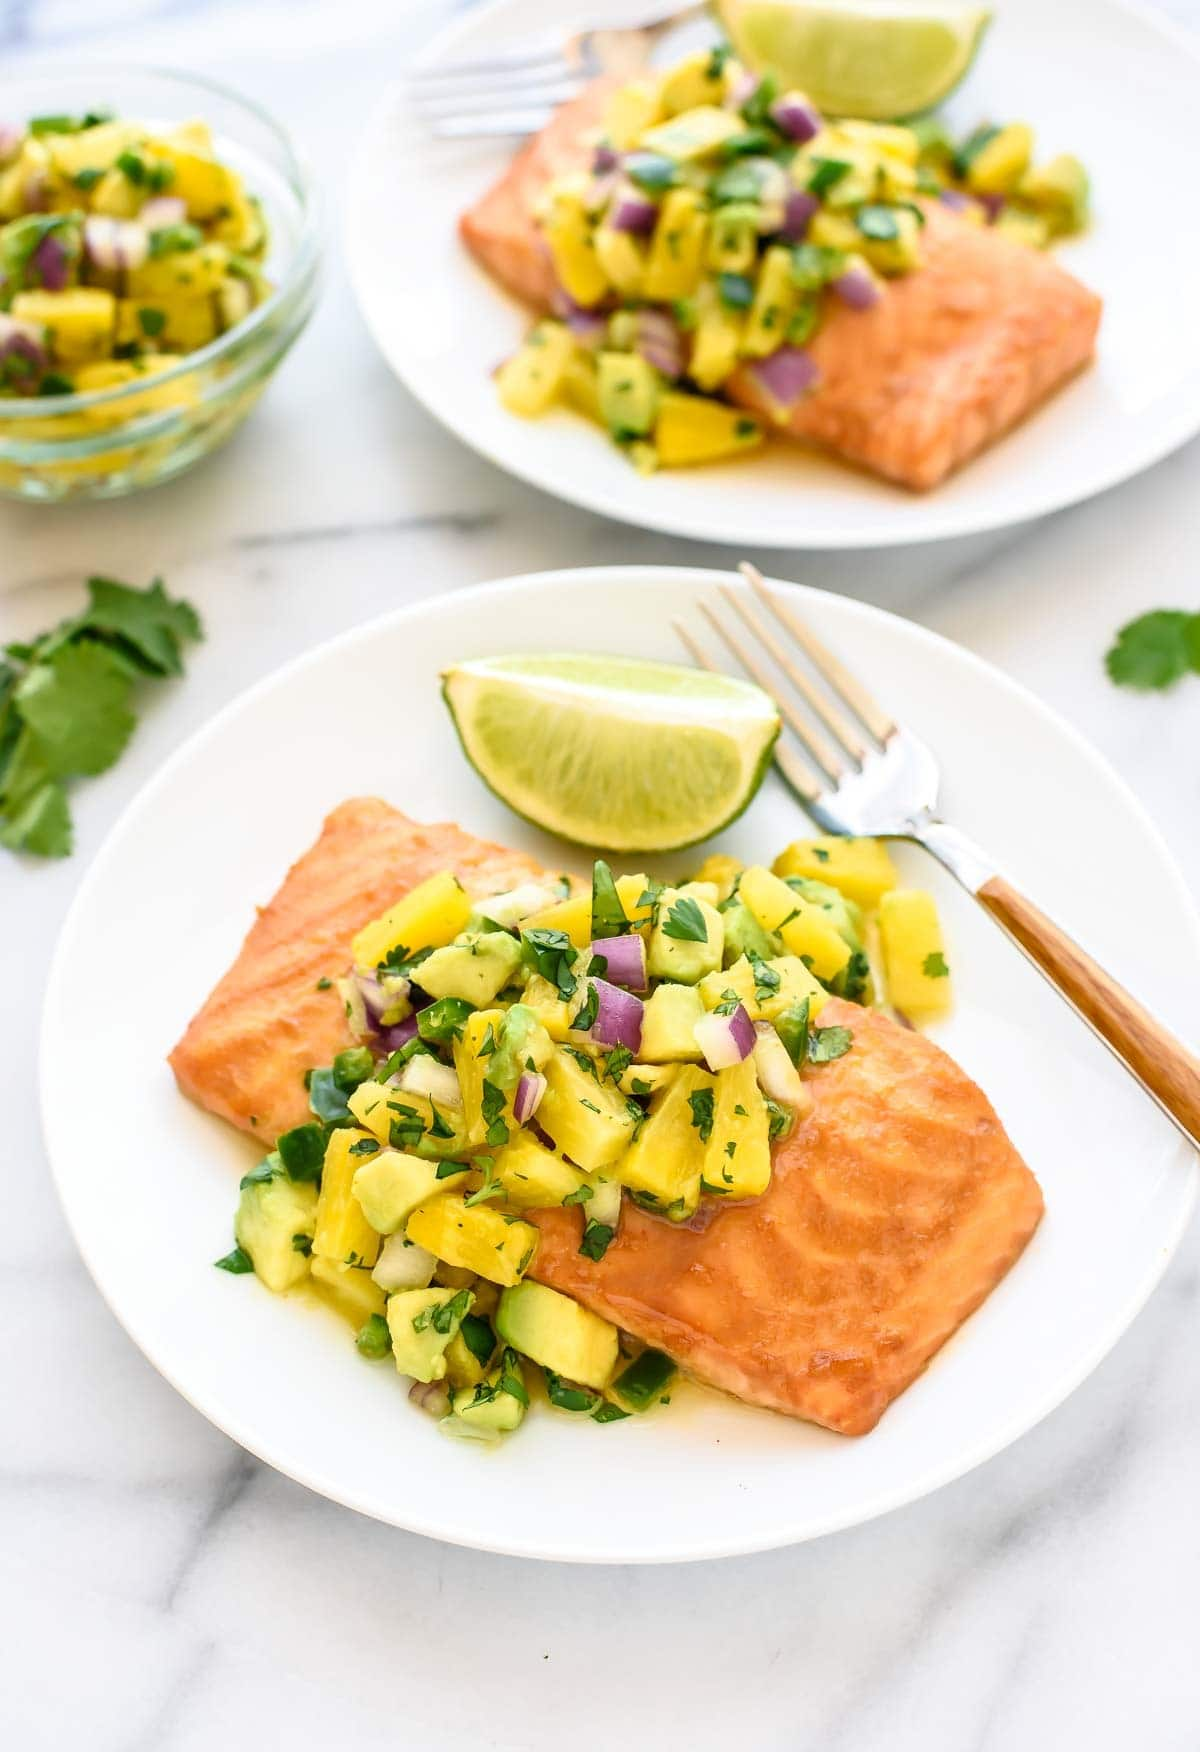 Pineapple Glazed Salmon. An easy healthy dinner that's packed with flavor!